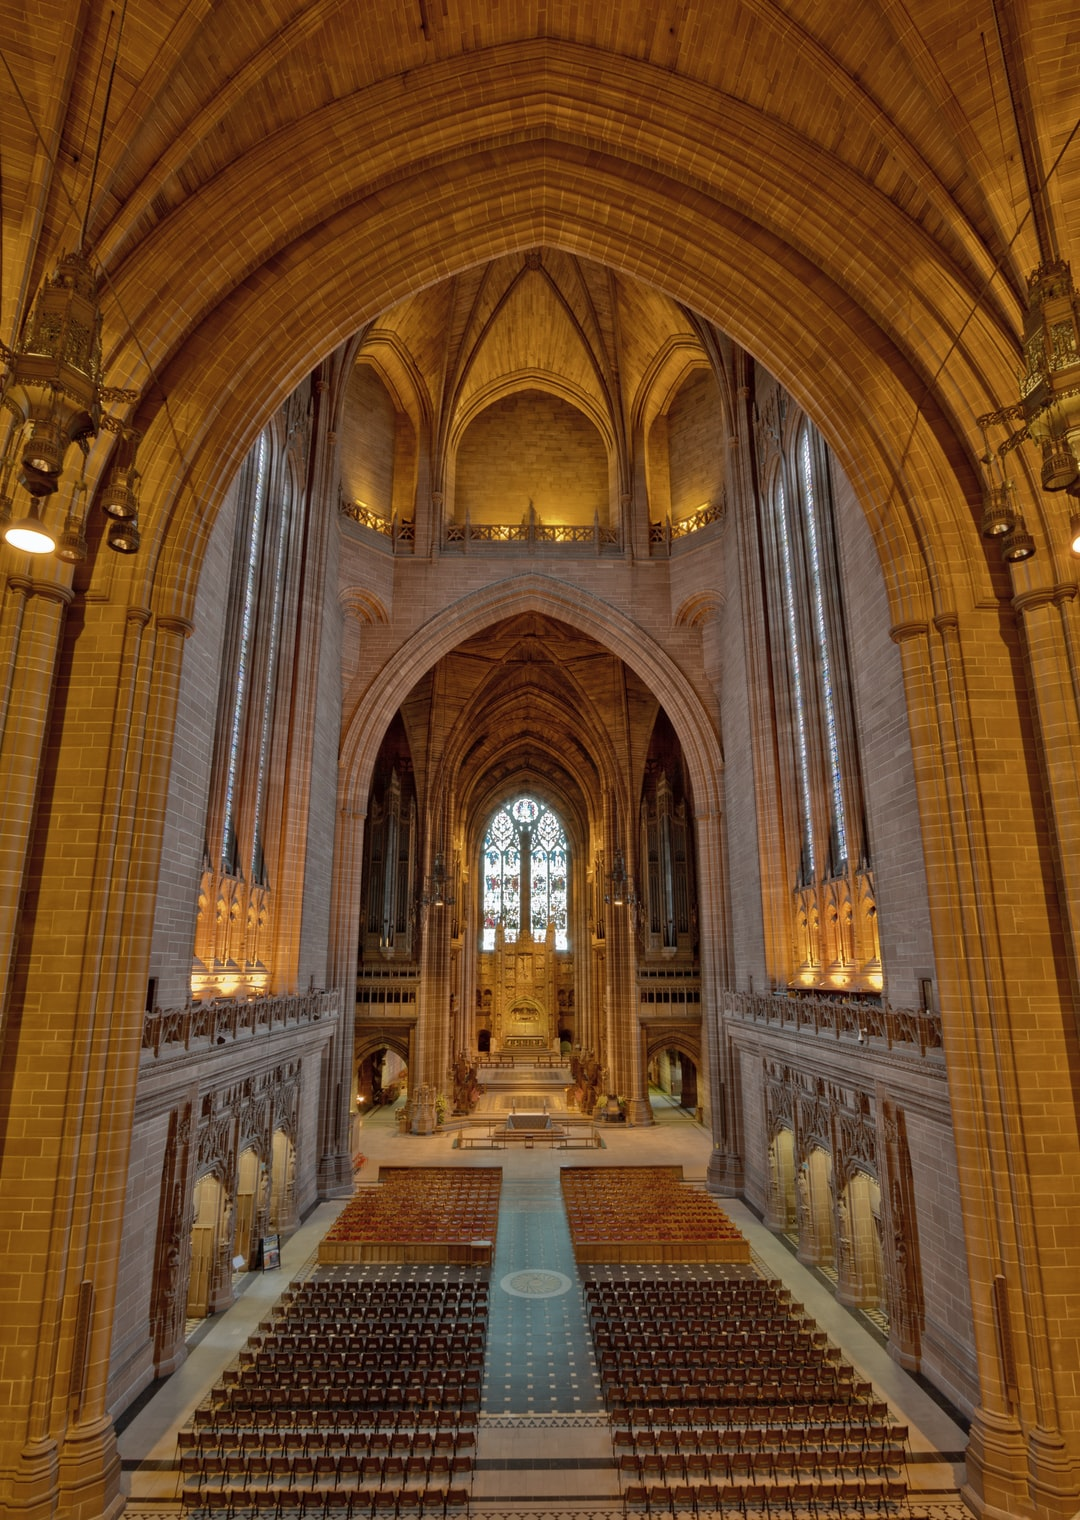 Here is a photograph taken from the nave inside Liverpool Anglican Cathedral.  Located in Liverpool, Mersyside, England.  Website : www.michaeldbeckwith.com   Email : michael@michaeldbeckwith.com